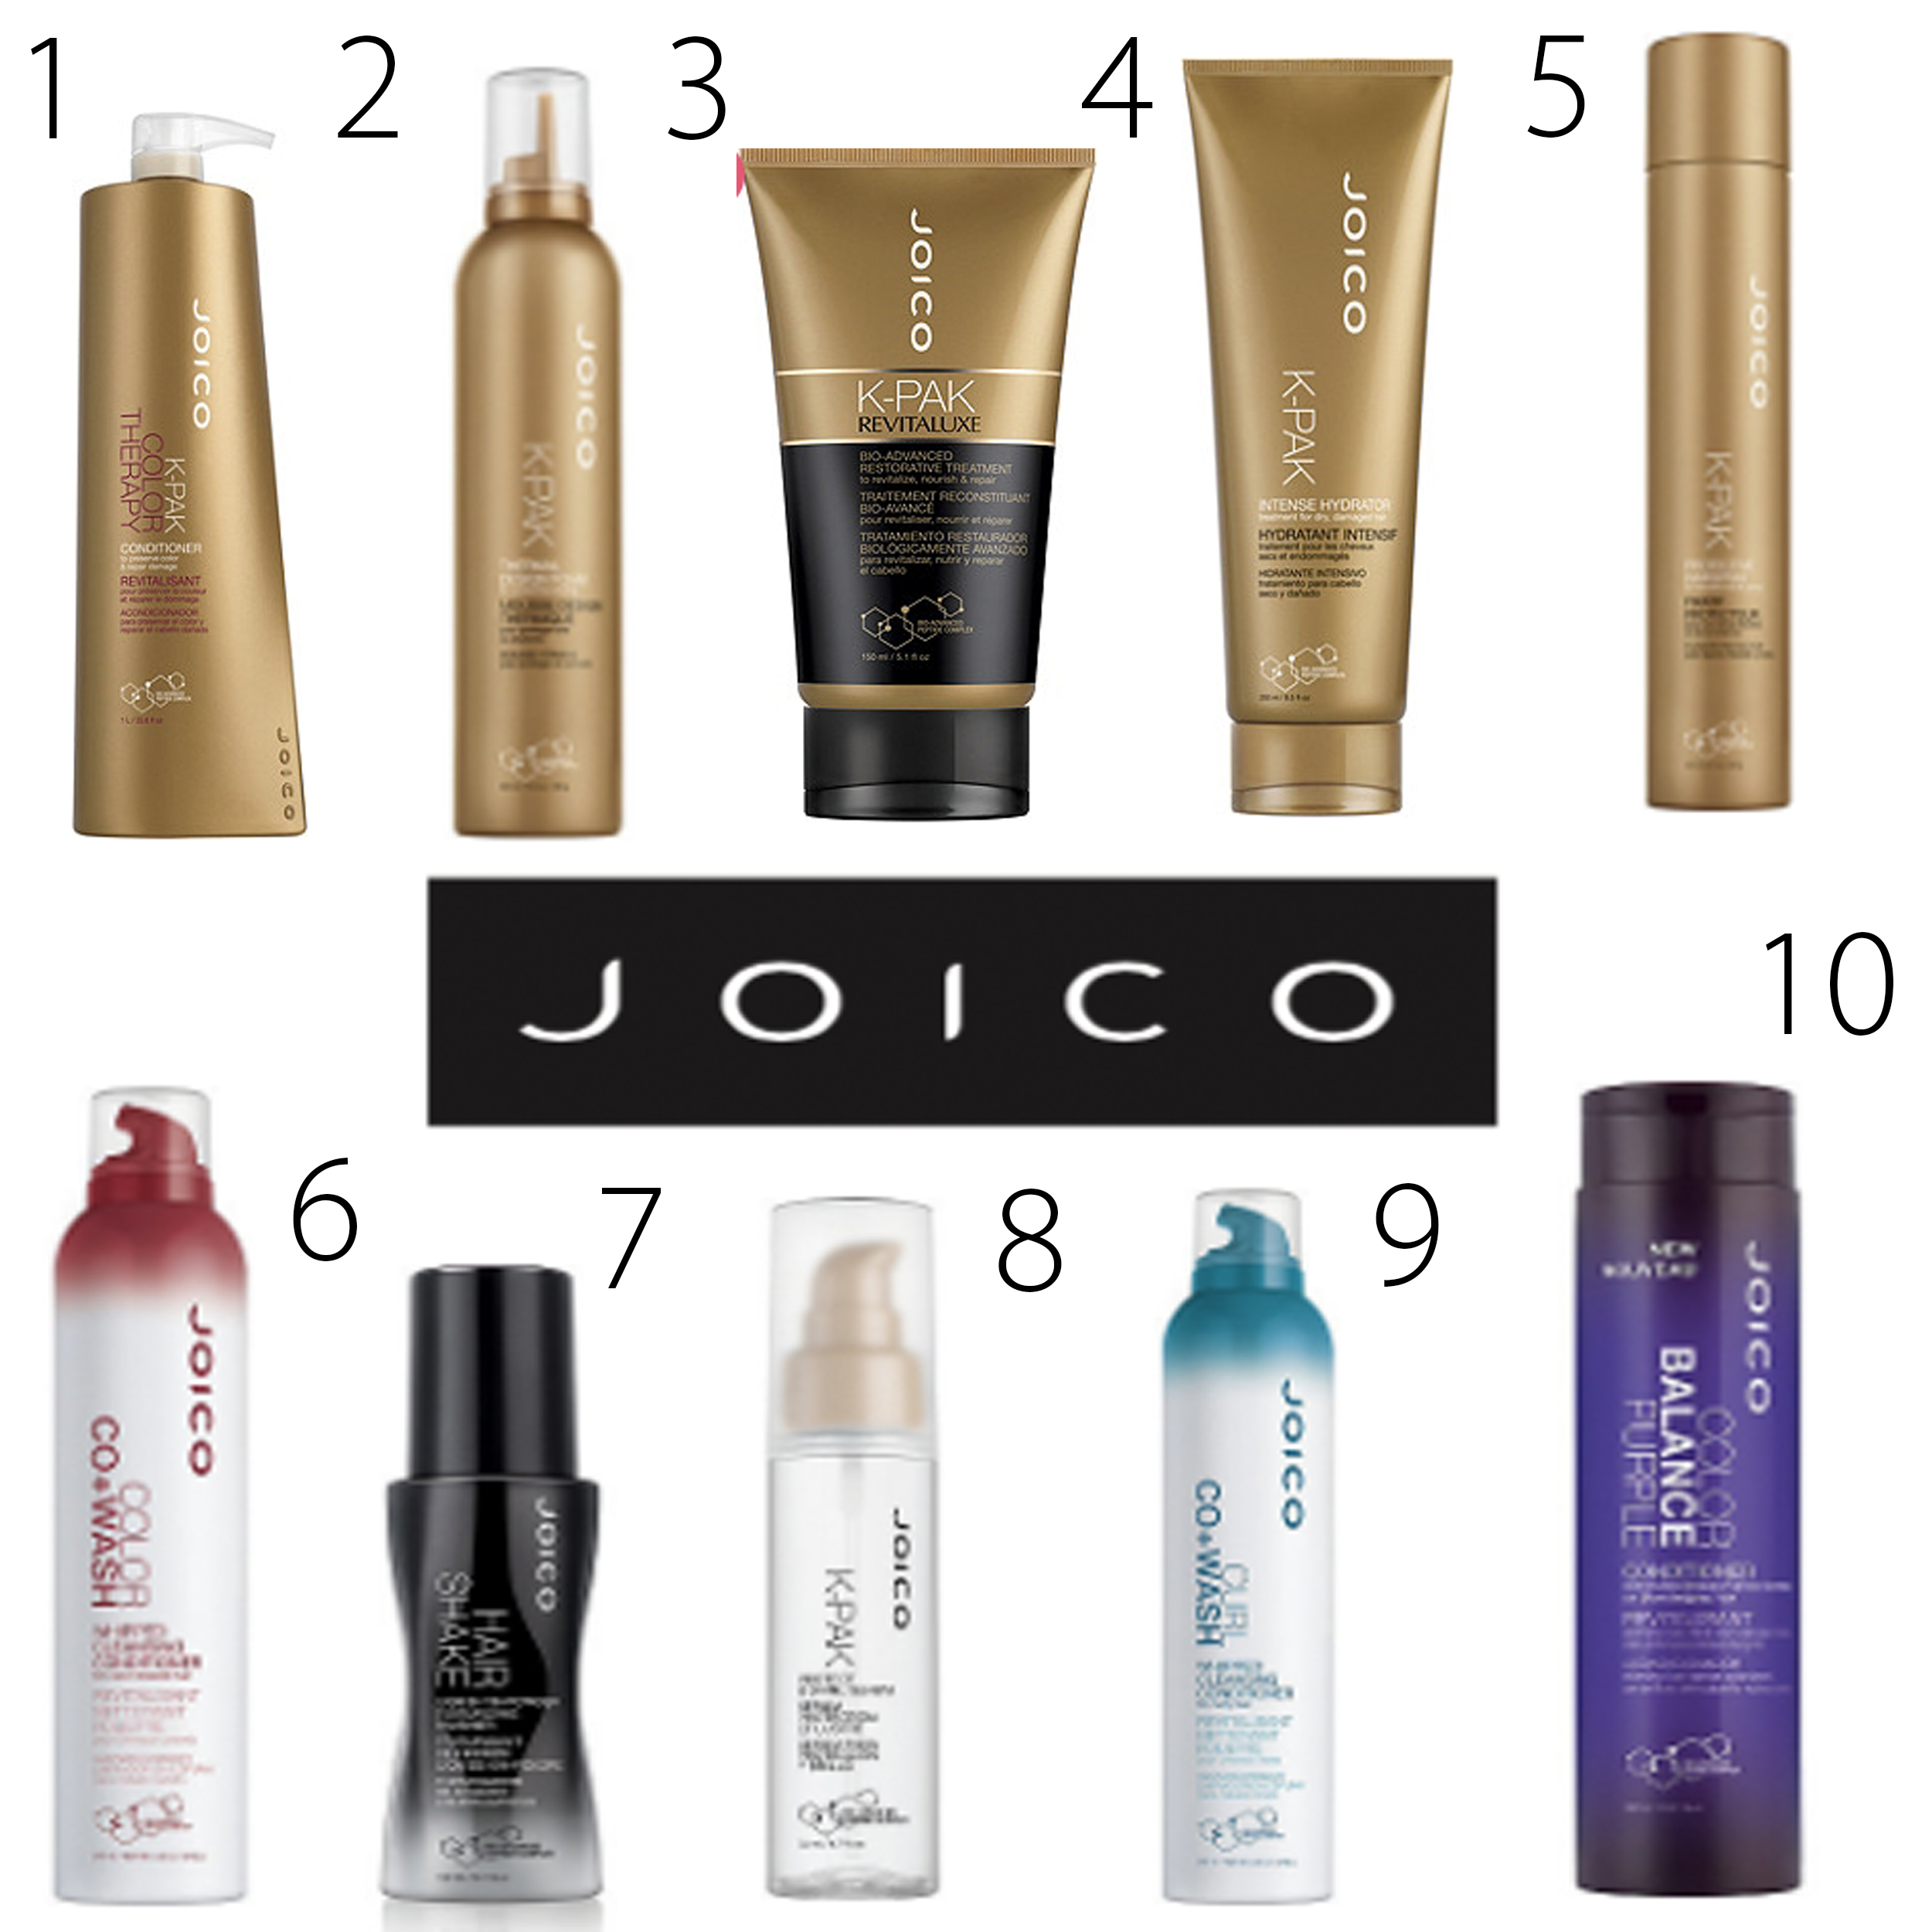 missyonmadison, melissa tierney, beauty blog, beauty blogger, beauty reviews, shampoo, conditioner, joico, joico hair, hair care, joico hair products, hair styles, color safe haircare, joico k pack, ulta beauty, ulta hair products,